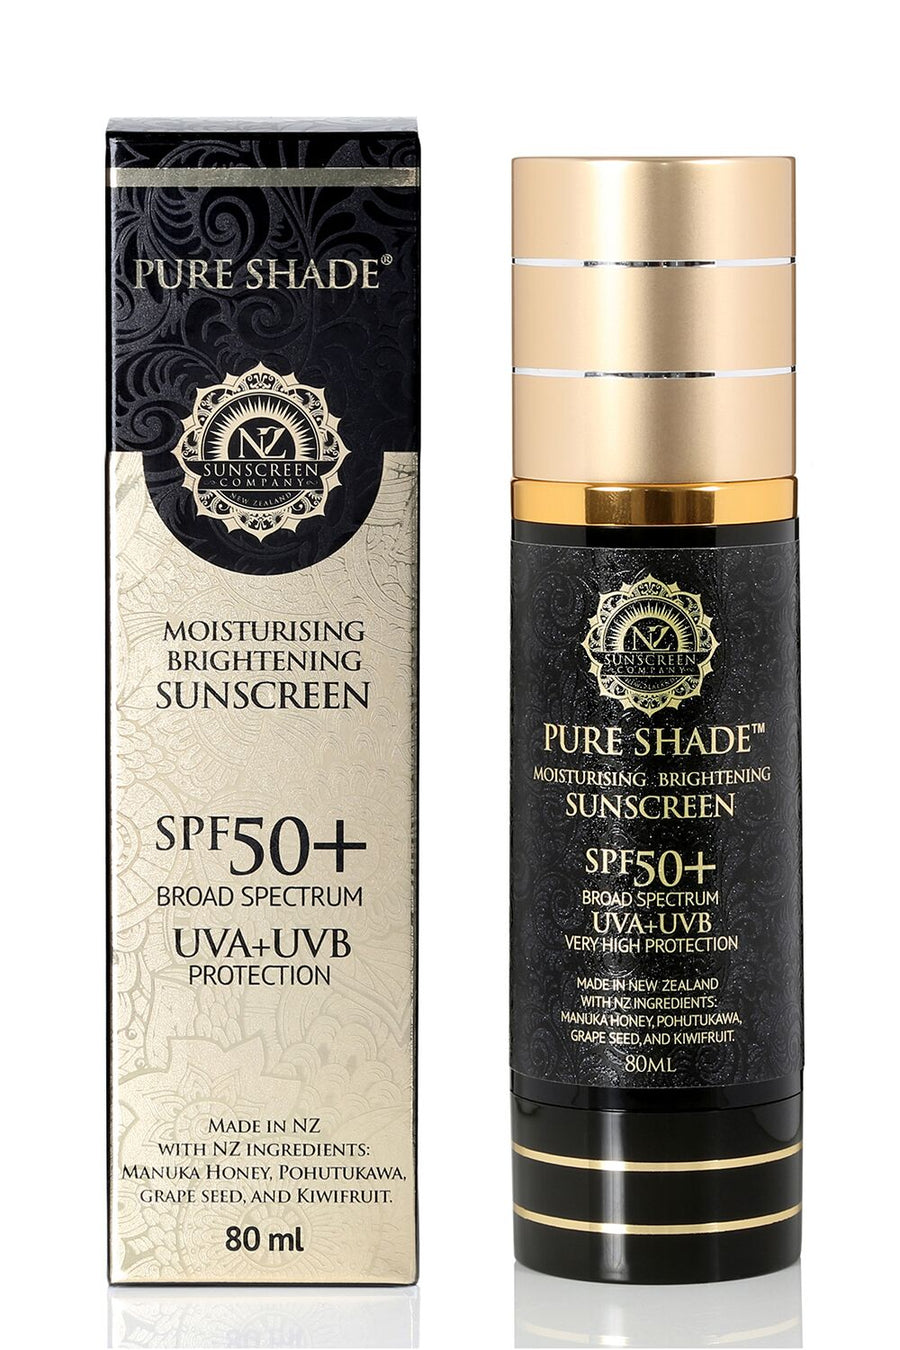 NZ Sunscreen Pure Shade SPF50+ Moisturising & Sunscreen 80ml Airless Pump